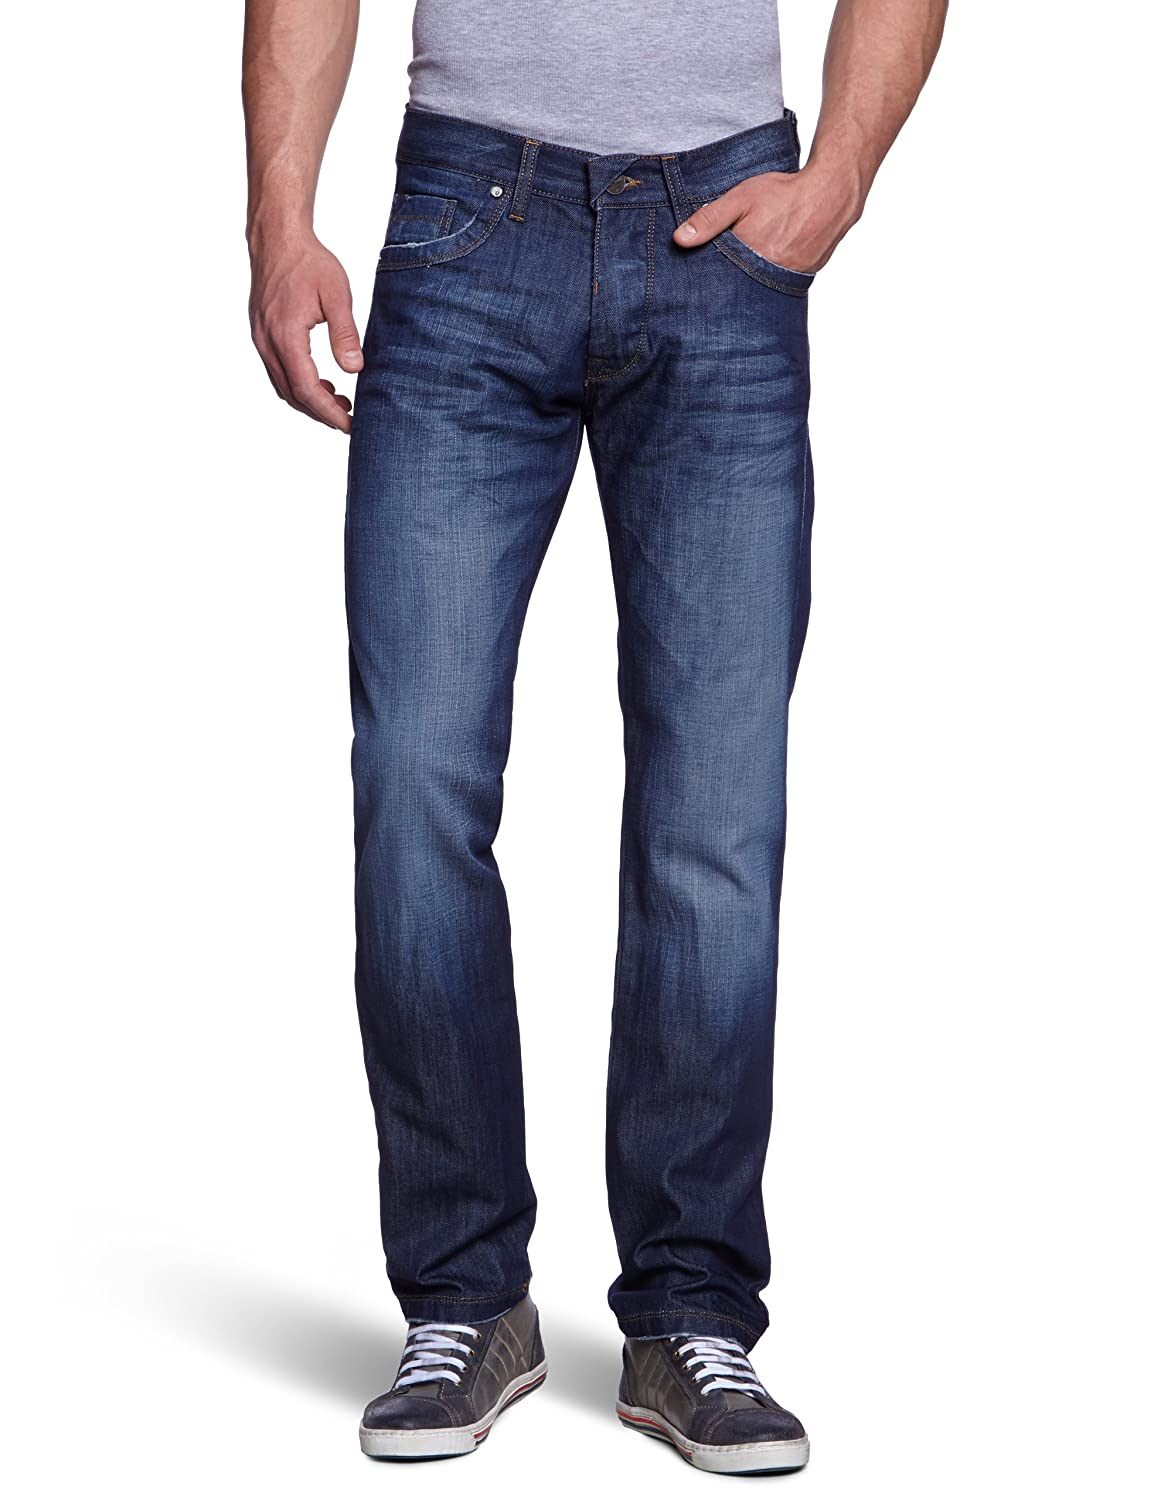 FREEMAN T.PORTER Herren Jeans Normaler Bund 00025331_6002 / Decatur Denim F0509-34 splendid L34